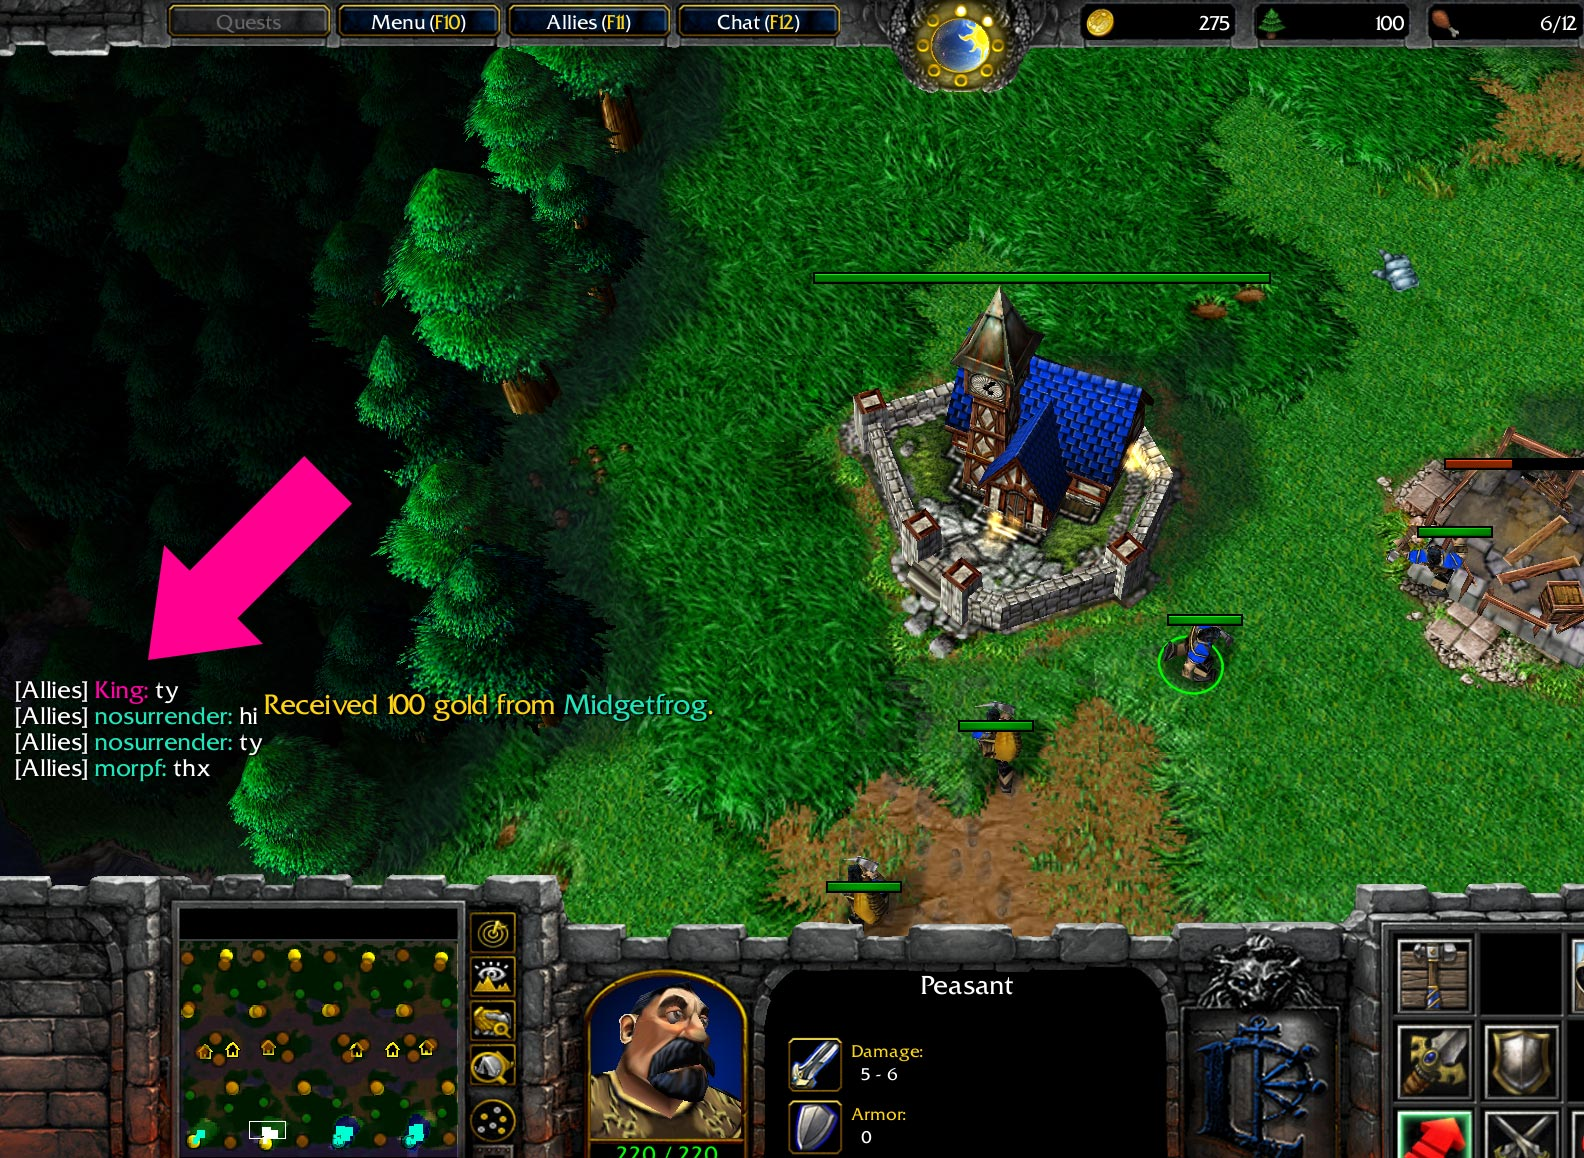 Warcraft 3 Random Team Screenshot